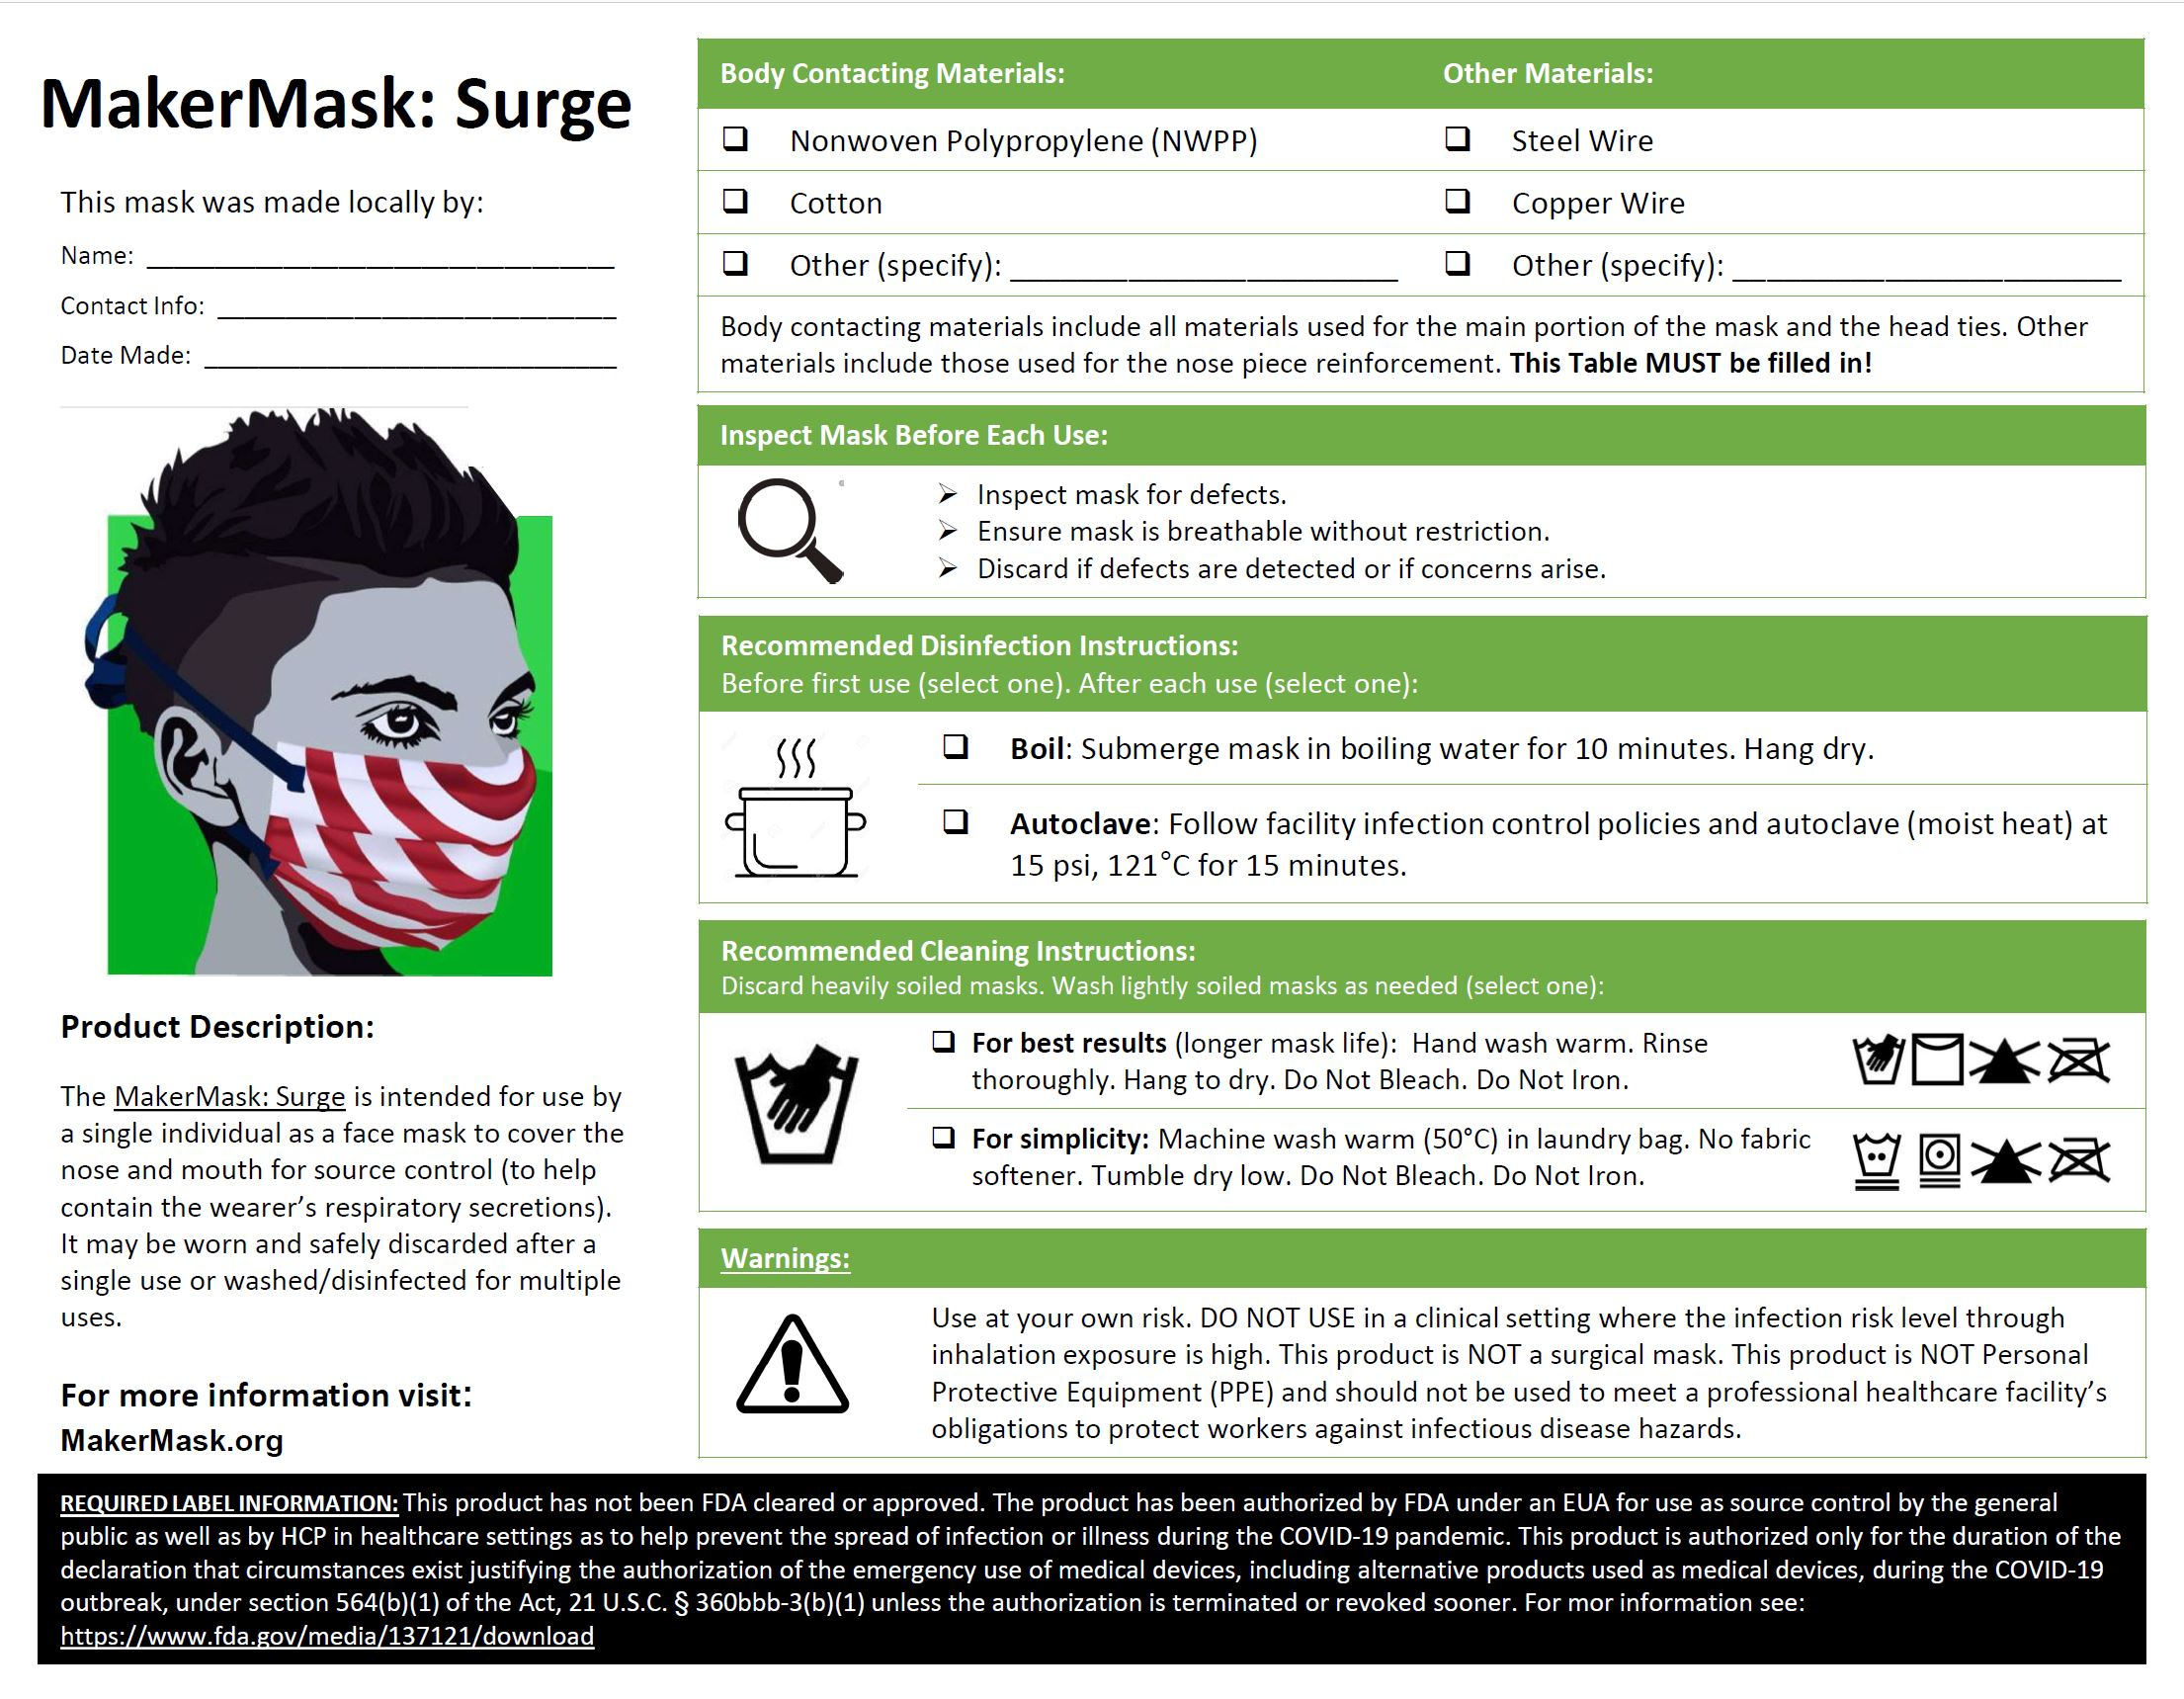 Label Me A Face Mask: FDA Labeling Requirements